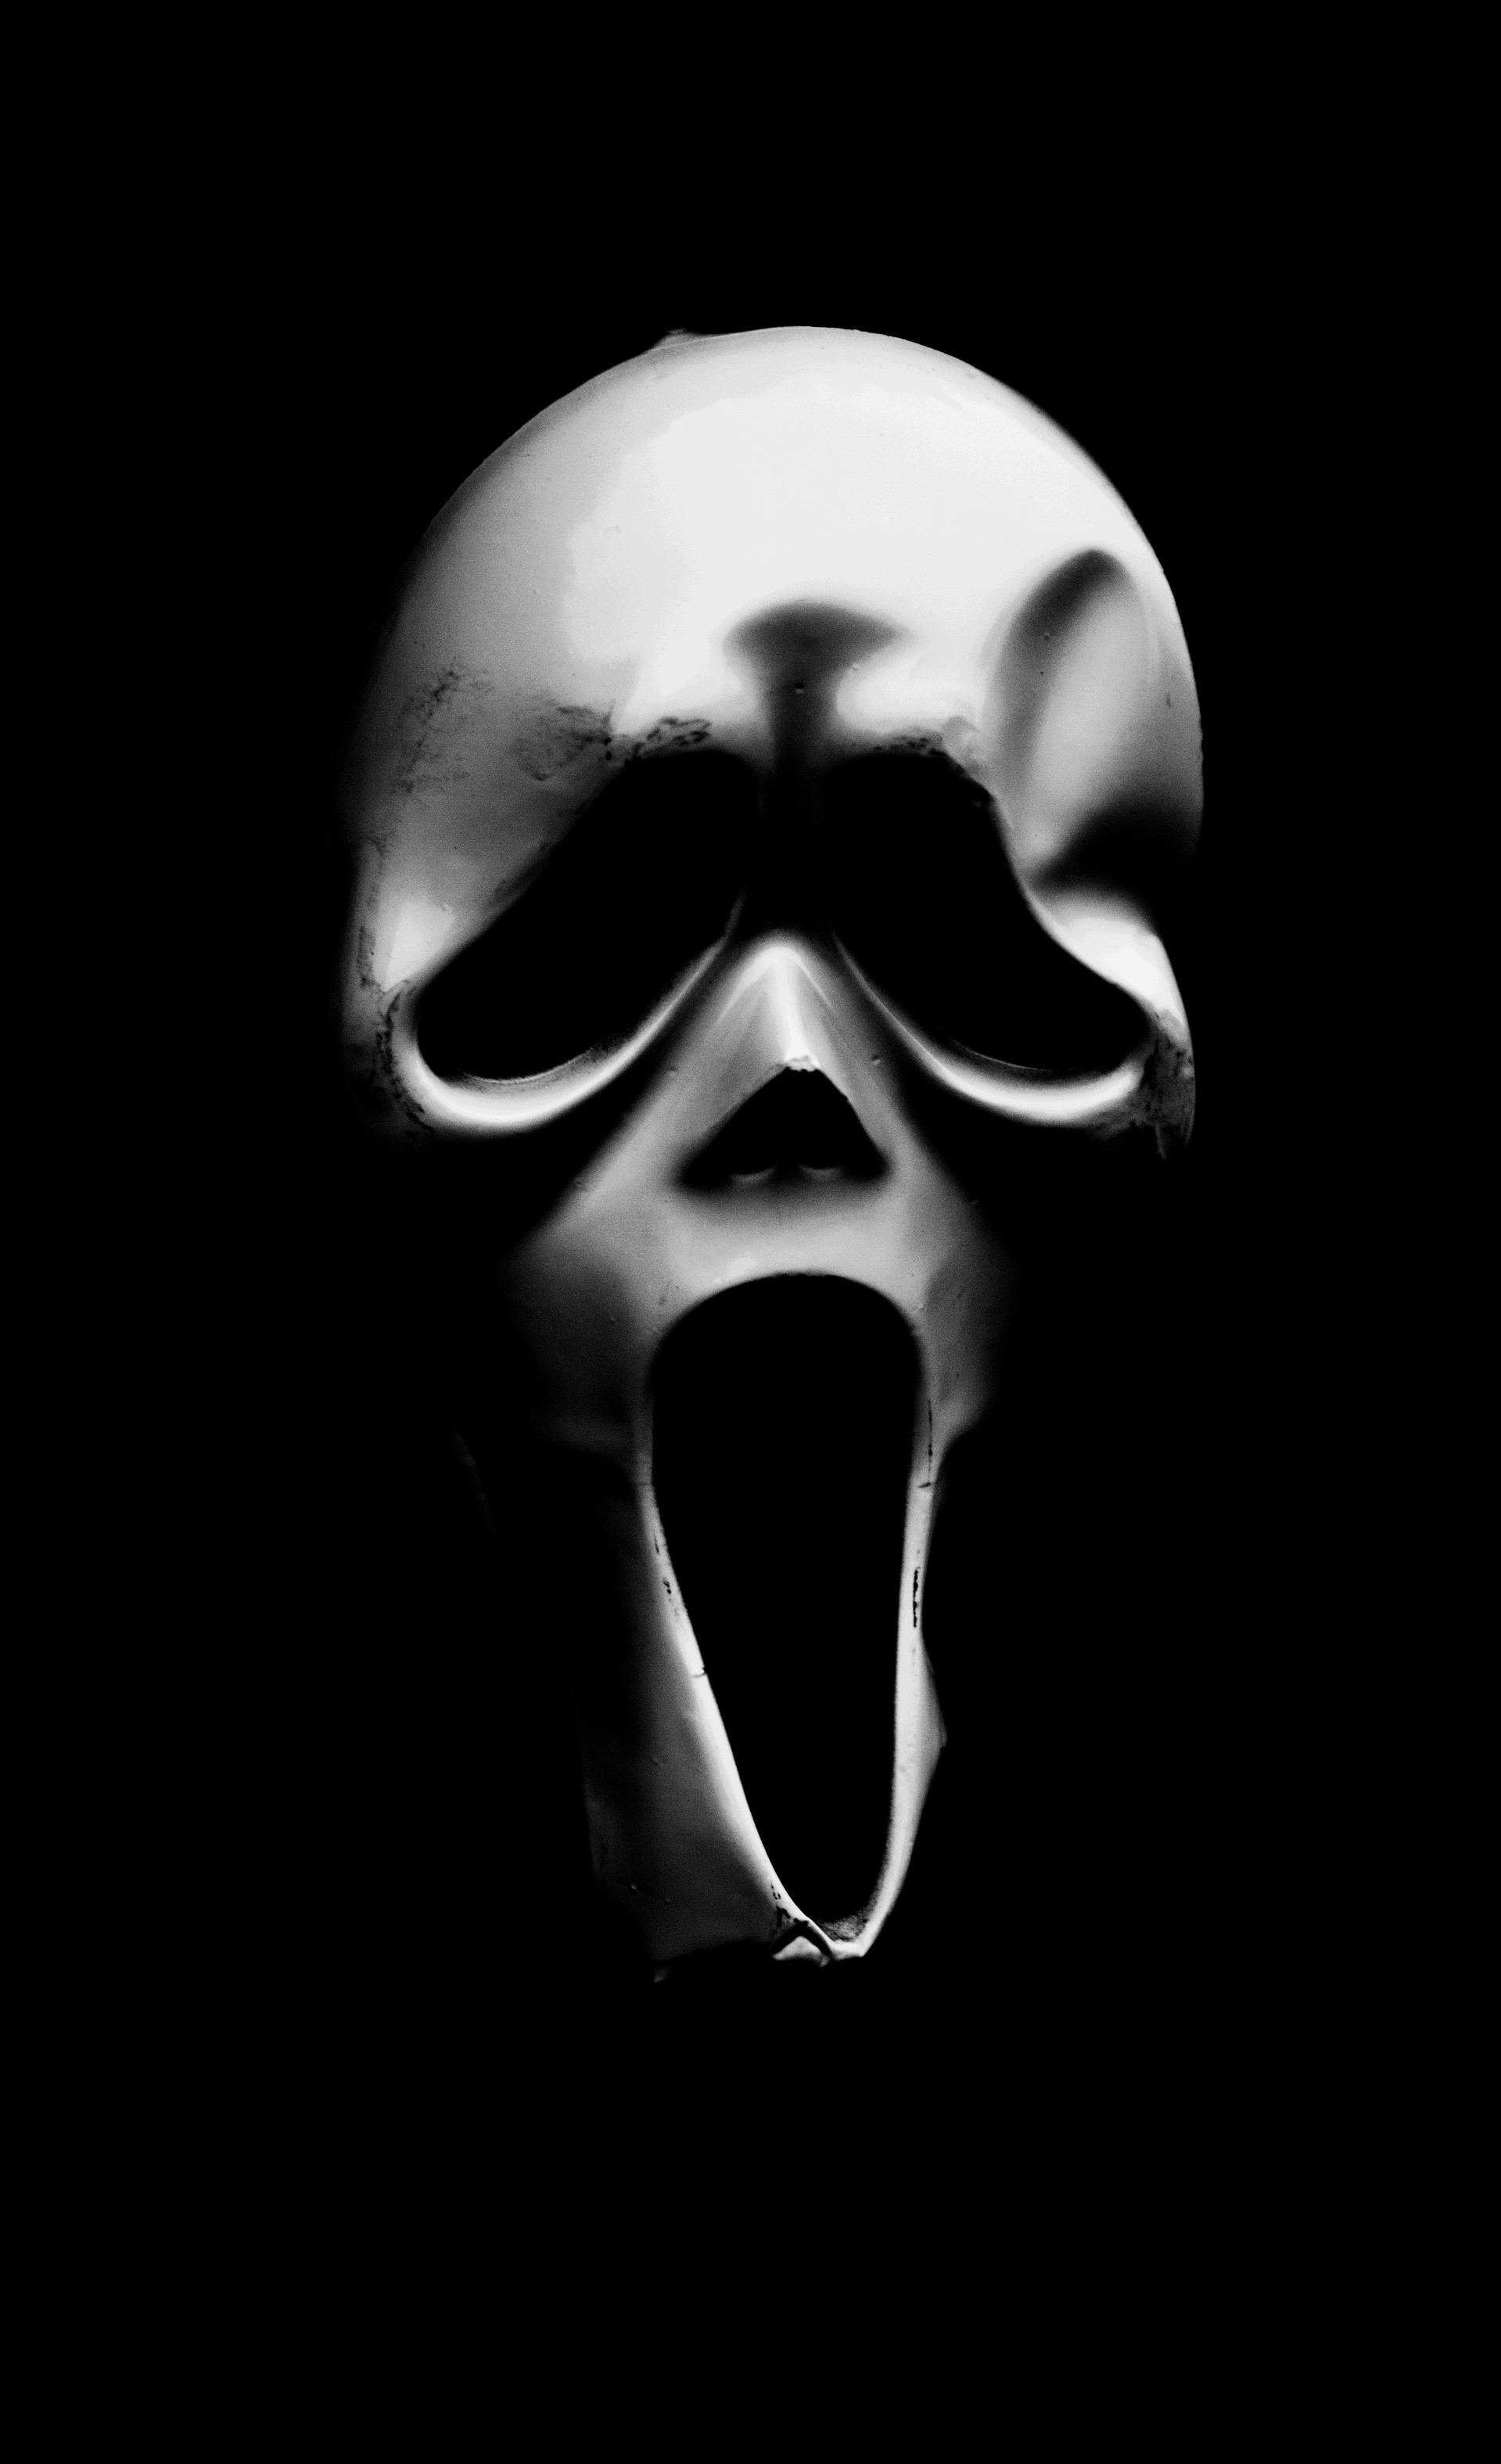 MONO - Scream - Michael and Janet Jackson by Danny Fagan (10 marks)